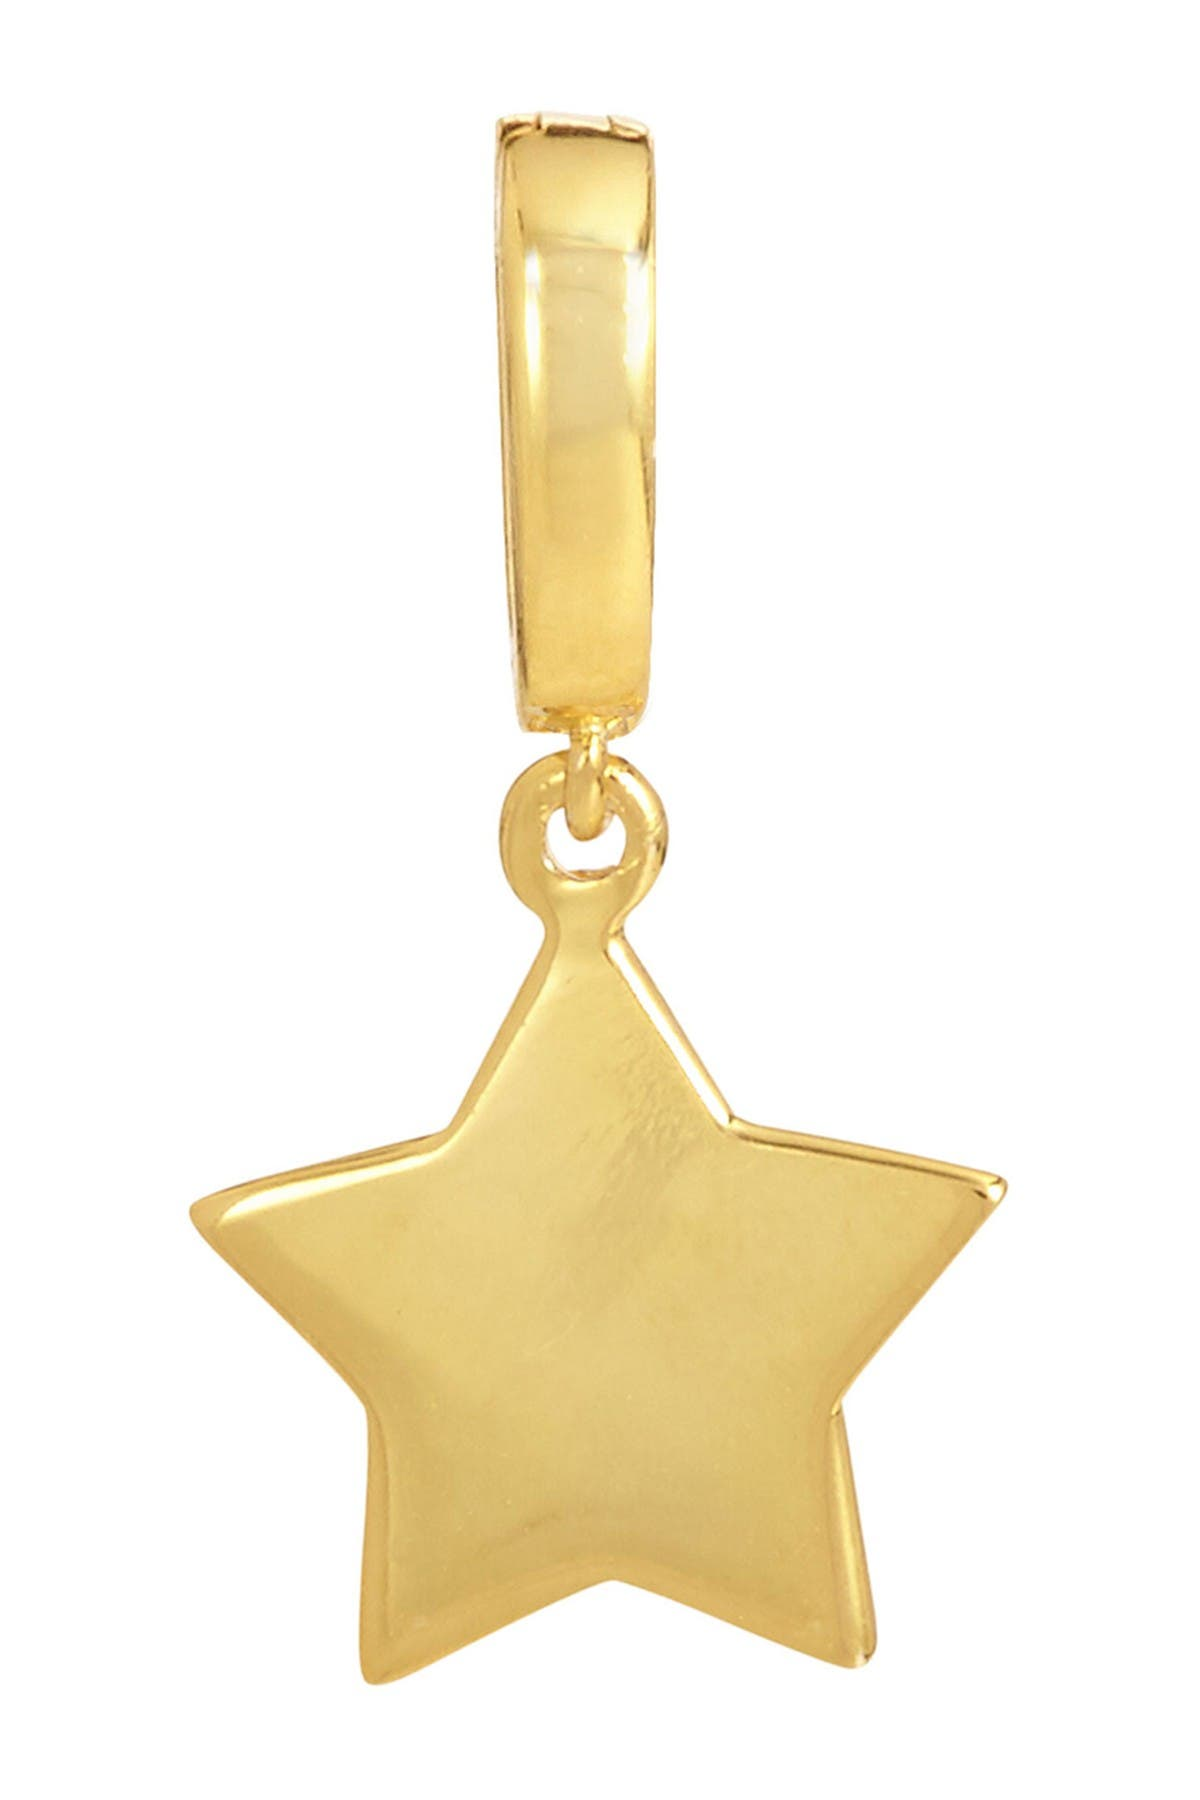 Image of Savvy Cie 18K Yellow Gold Vermeil Star Charm